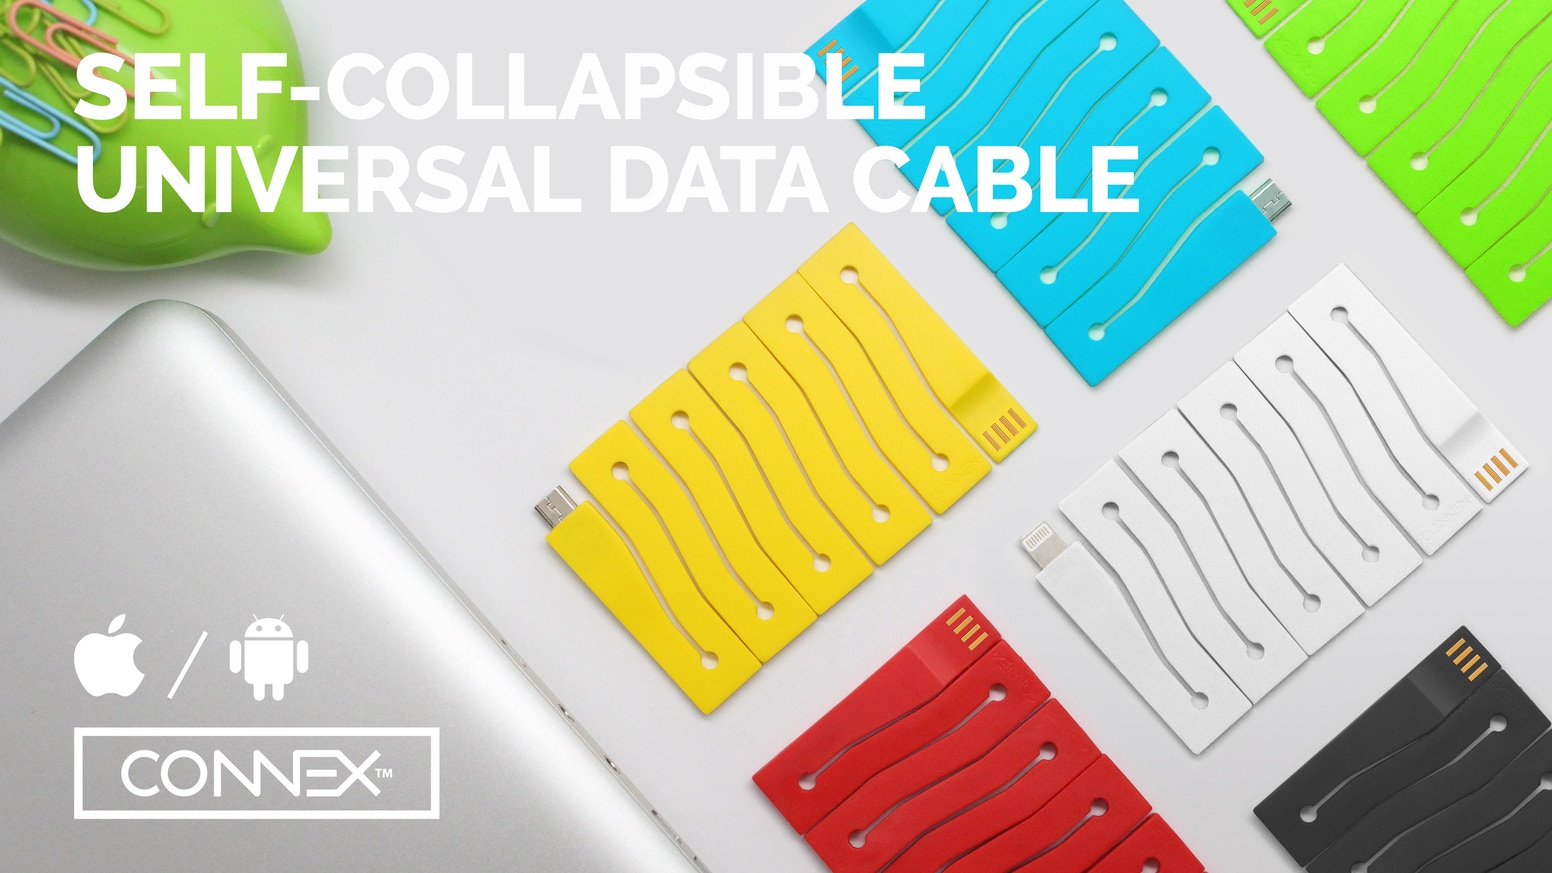 Modern, Functional and Fun, CONNEX is looking to change the cables that power our Devices (Compatible with Apple  OR Android)